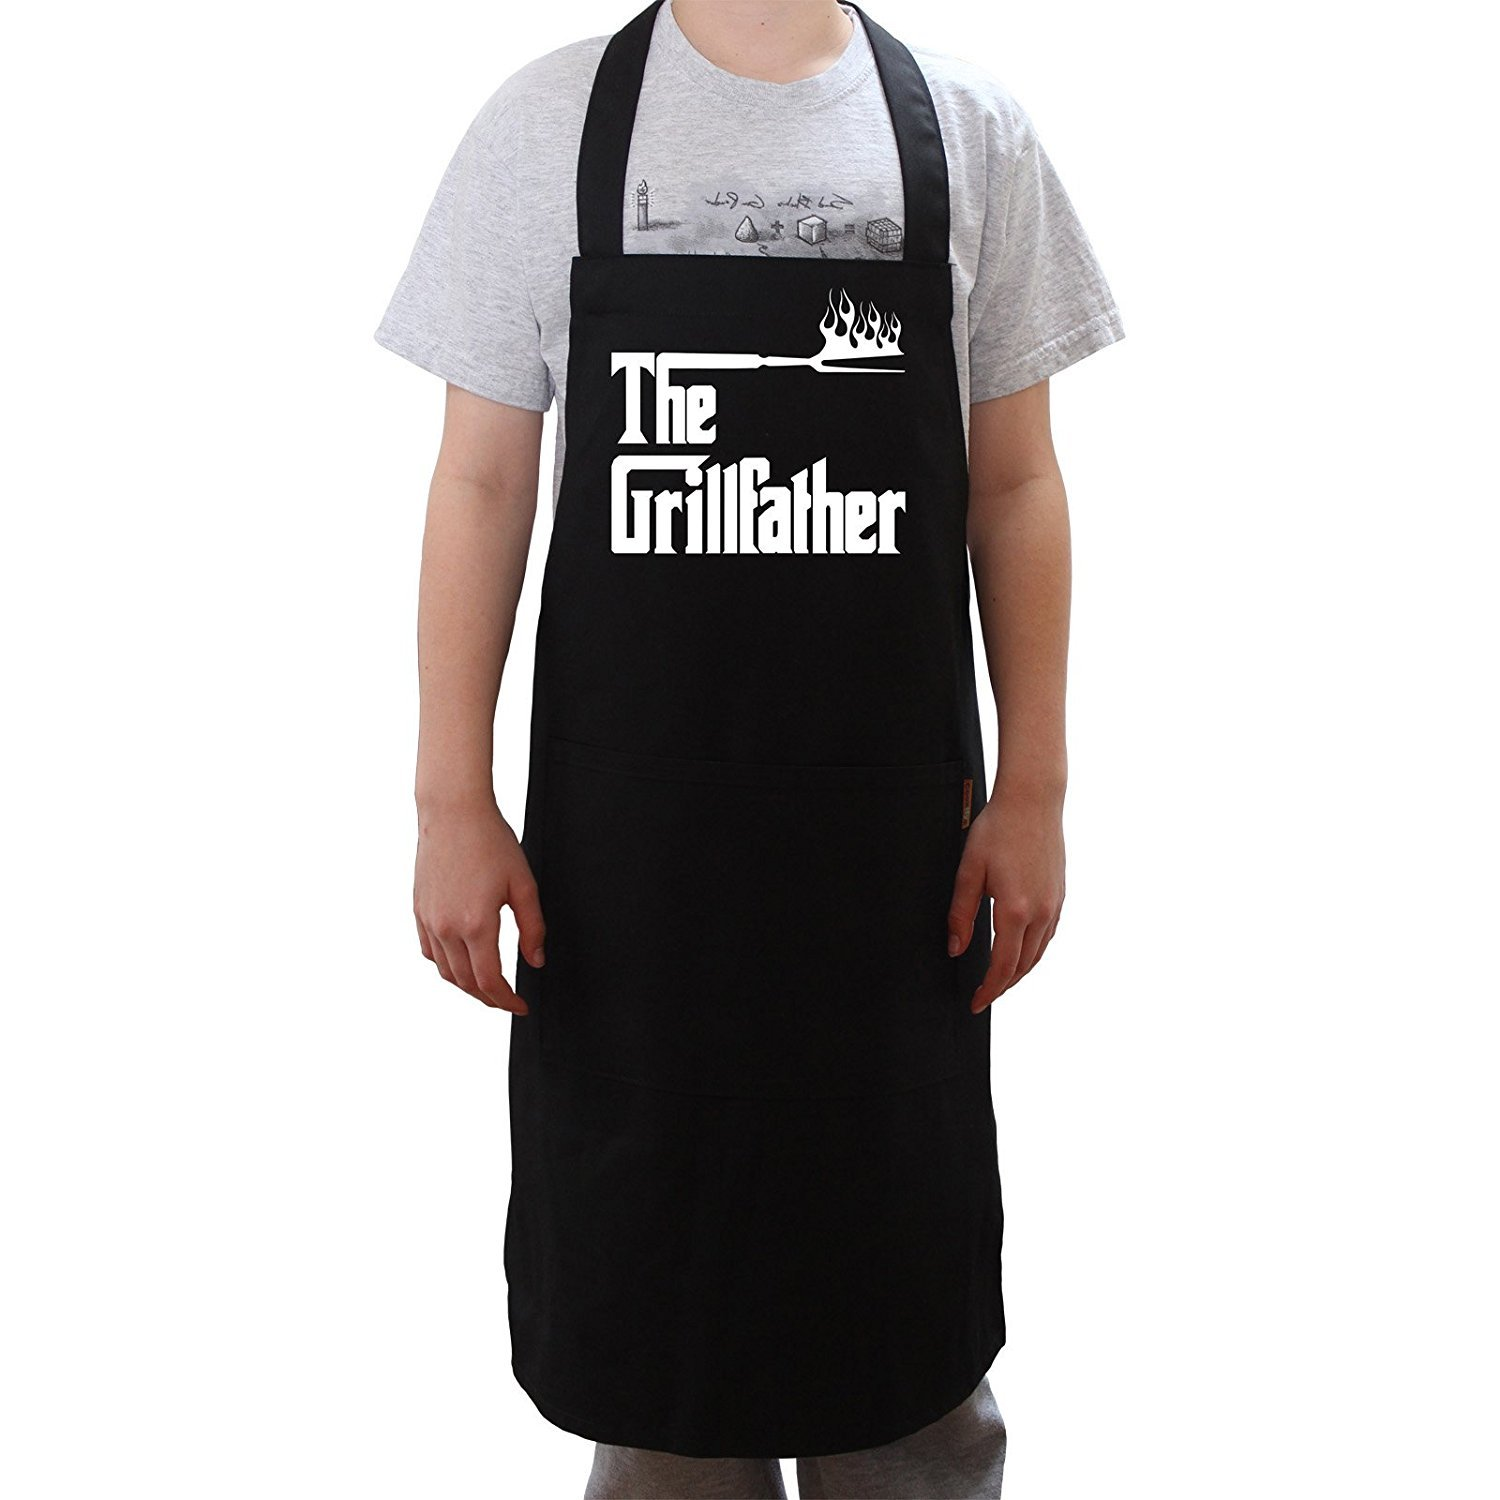 Cookify 'The Grillfather' nero grembiule divertente a forma barbecue regali per gli uomini donne e ragazzi, Black, Adulto S Others